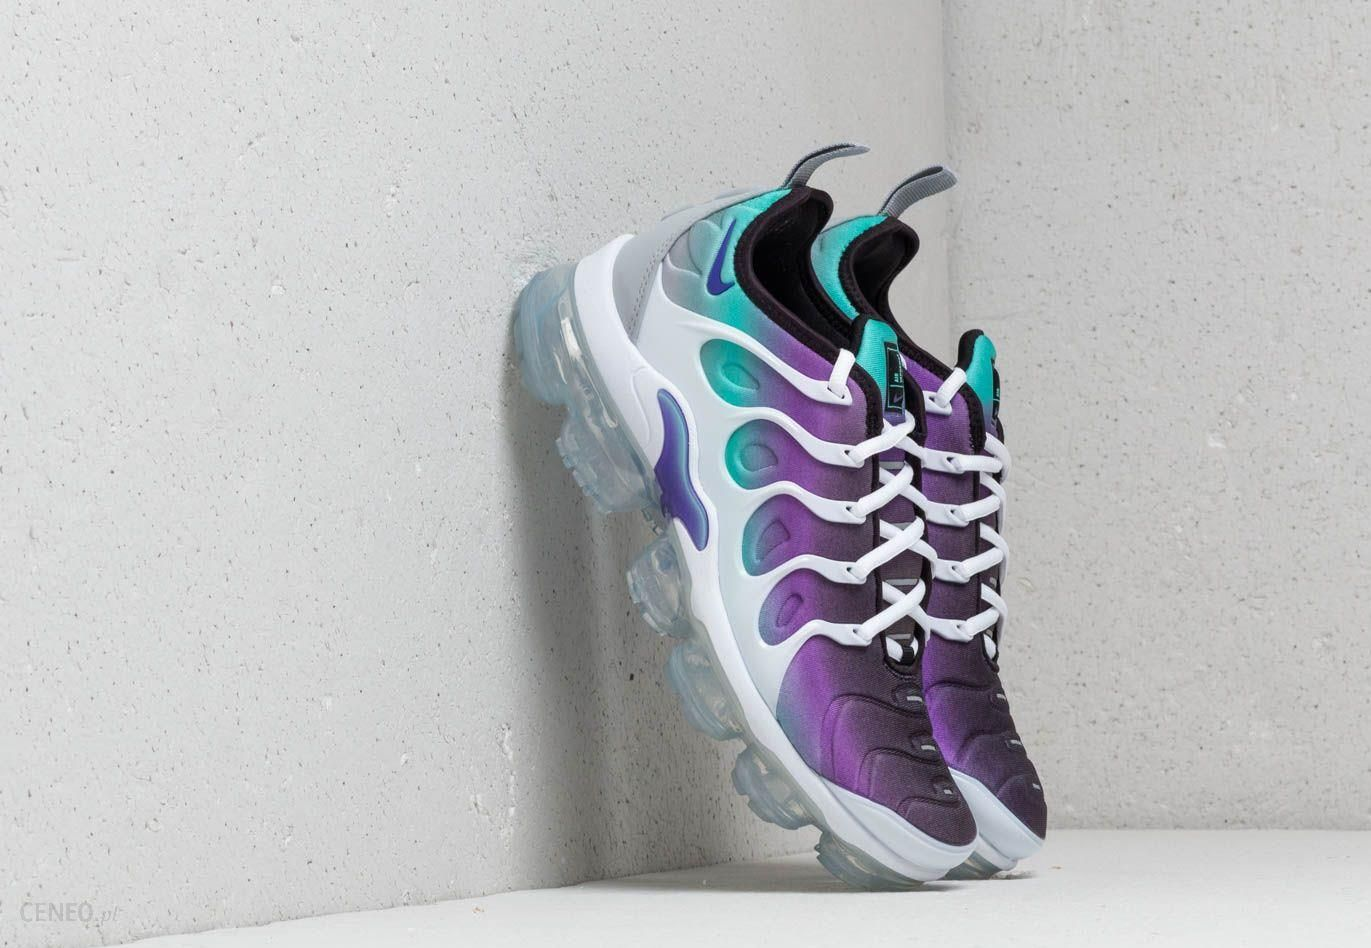 online store 5b399 3aef4 Nike Air Vapormax Plus White/ Fierce Purple